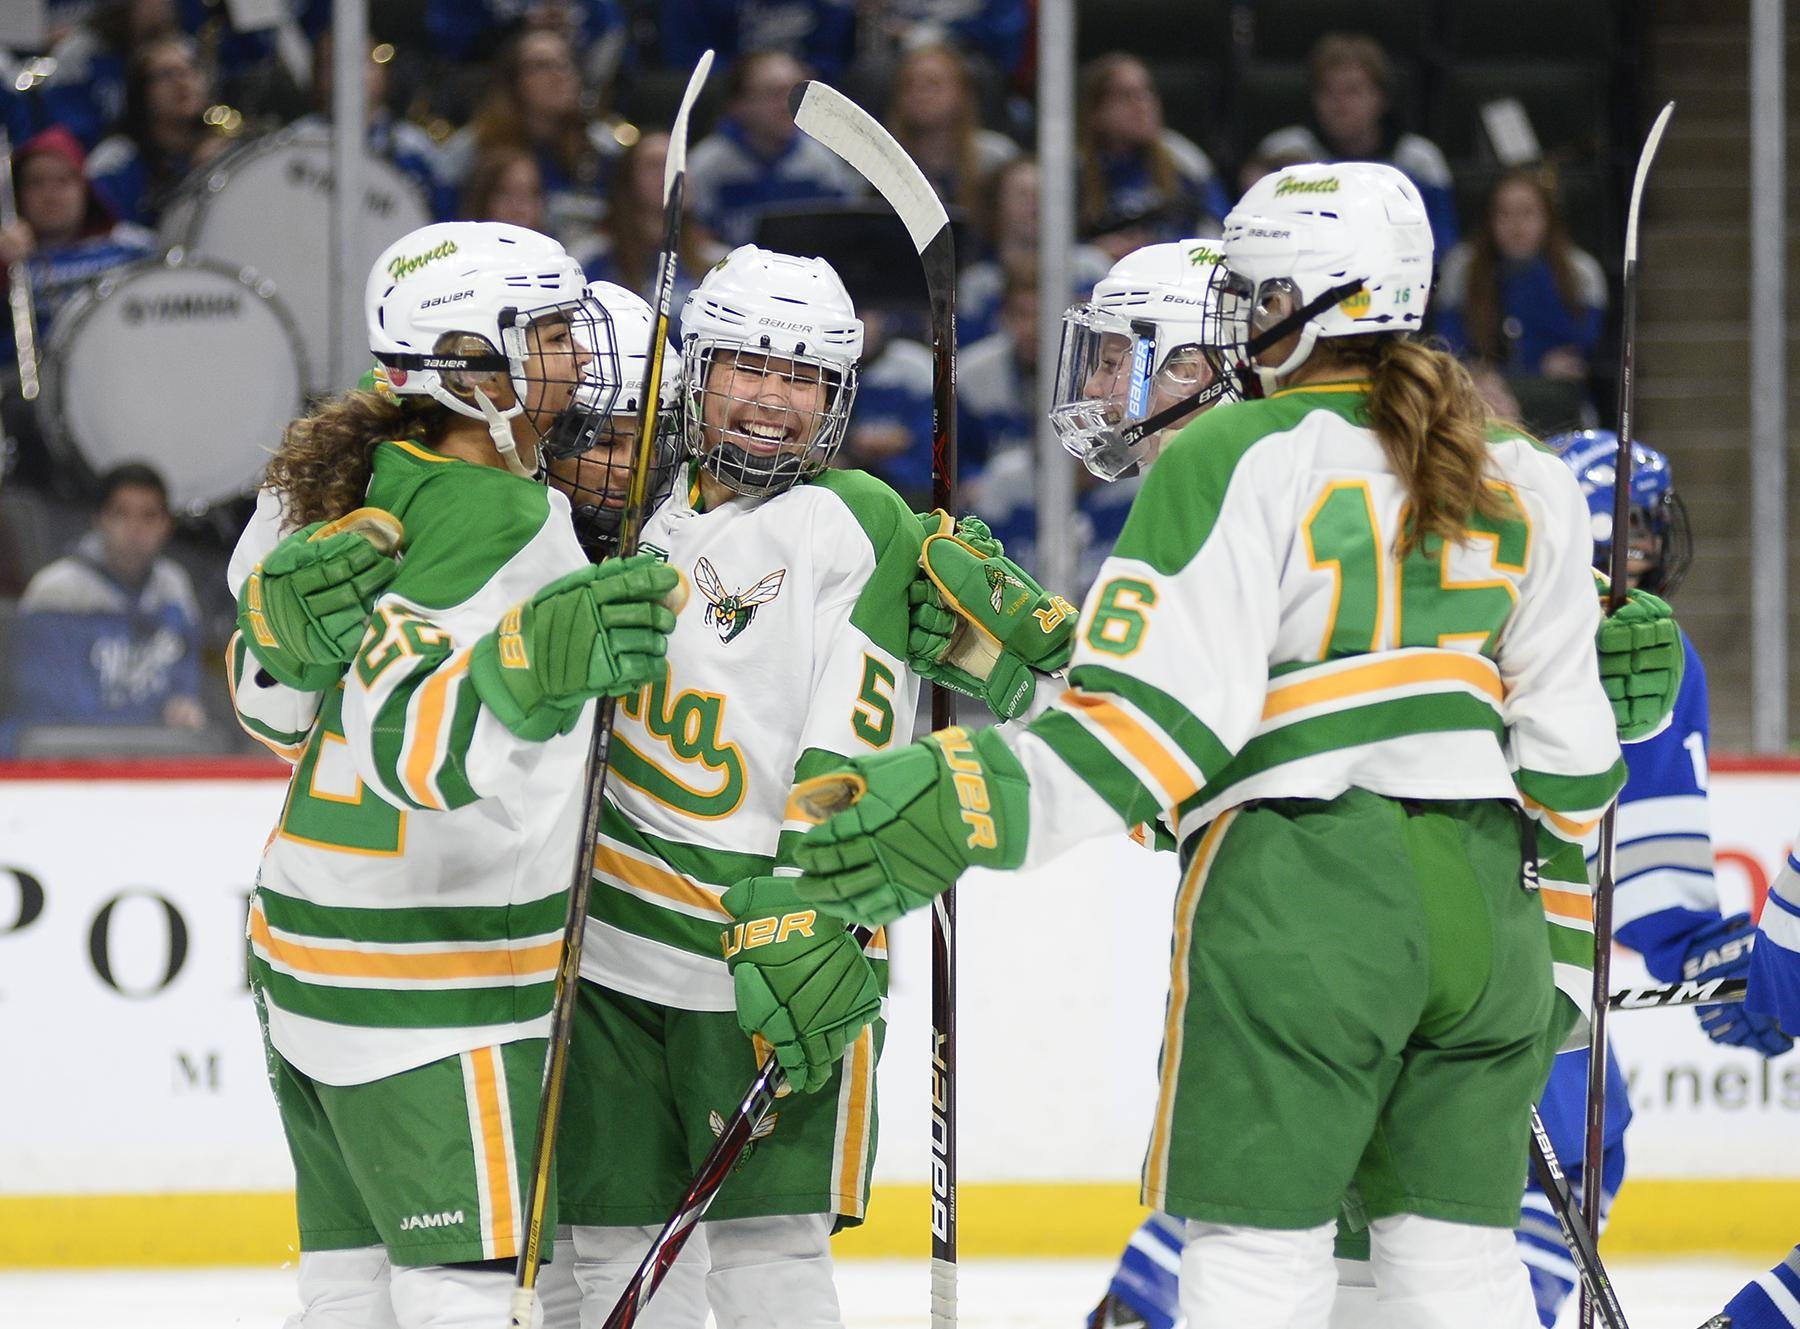 MN H.S.: Girls - Edina Shuts Out Brainerd/Little Falls